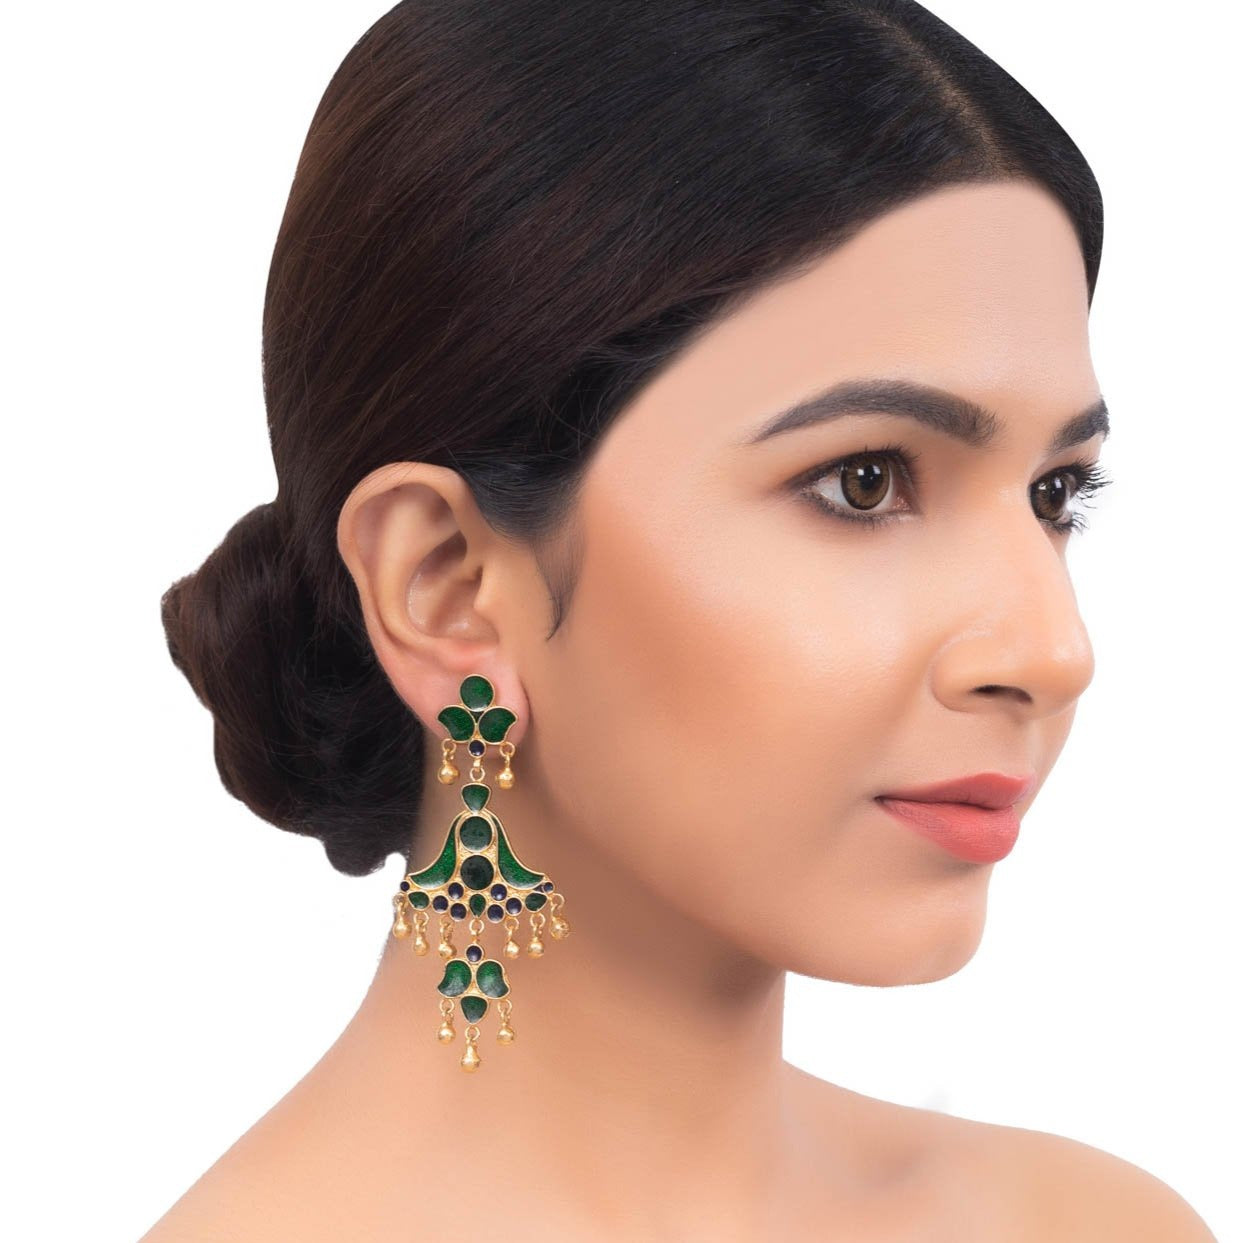 Elegant Green Stones Long Earrings